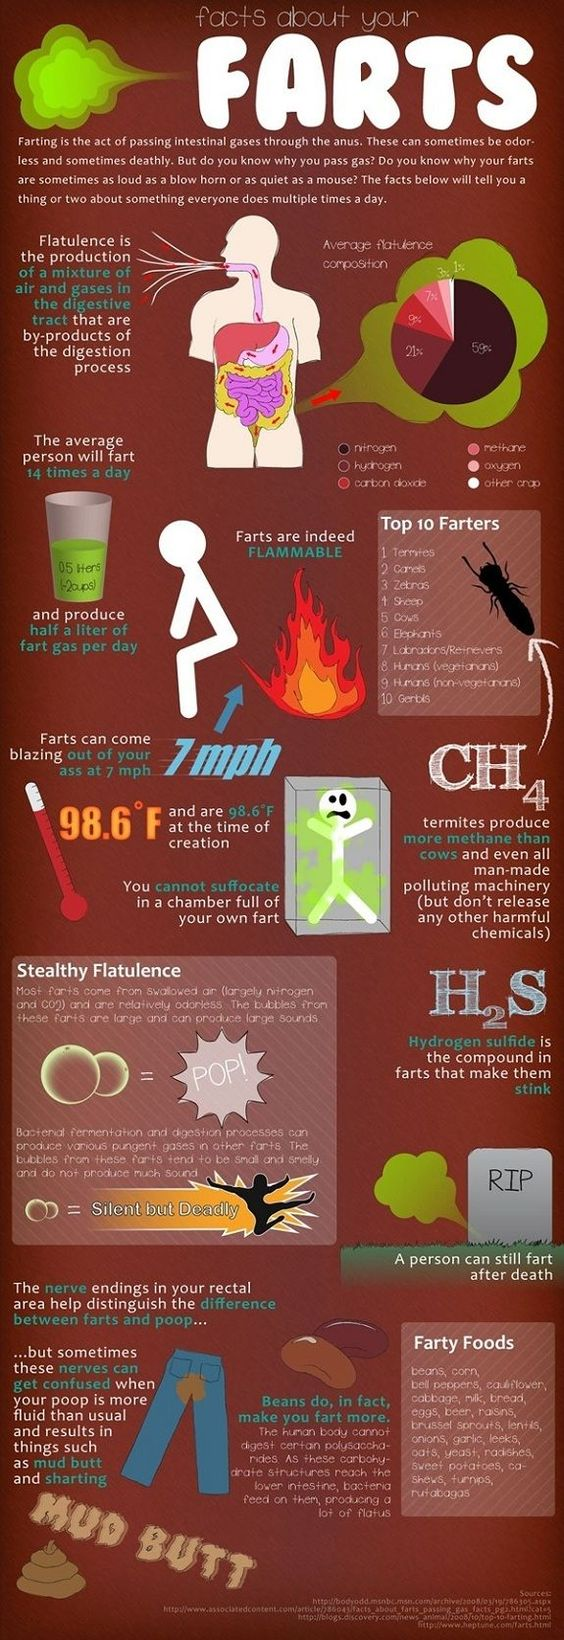 Facts About Your Farts.... this is slightly hilarious